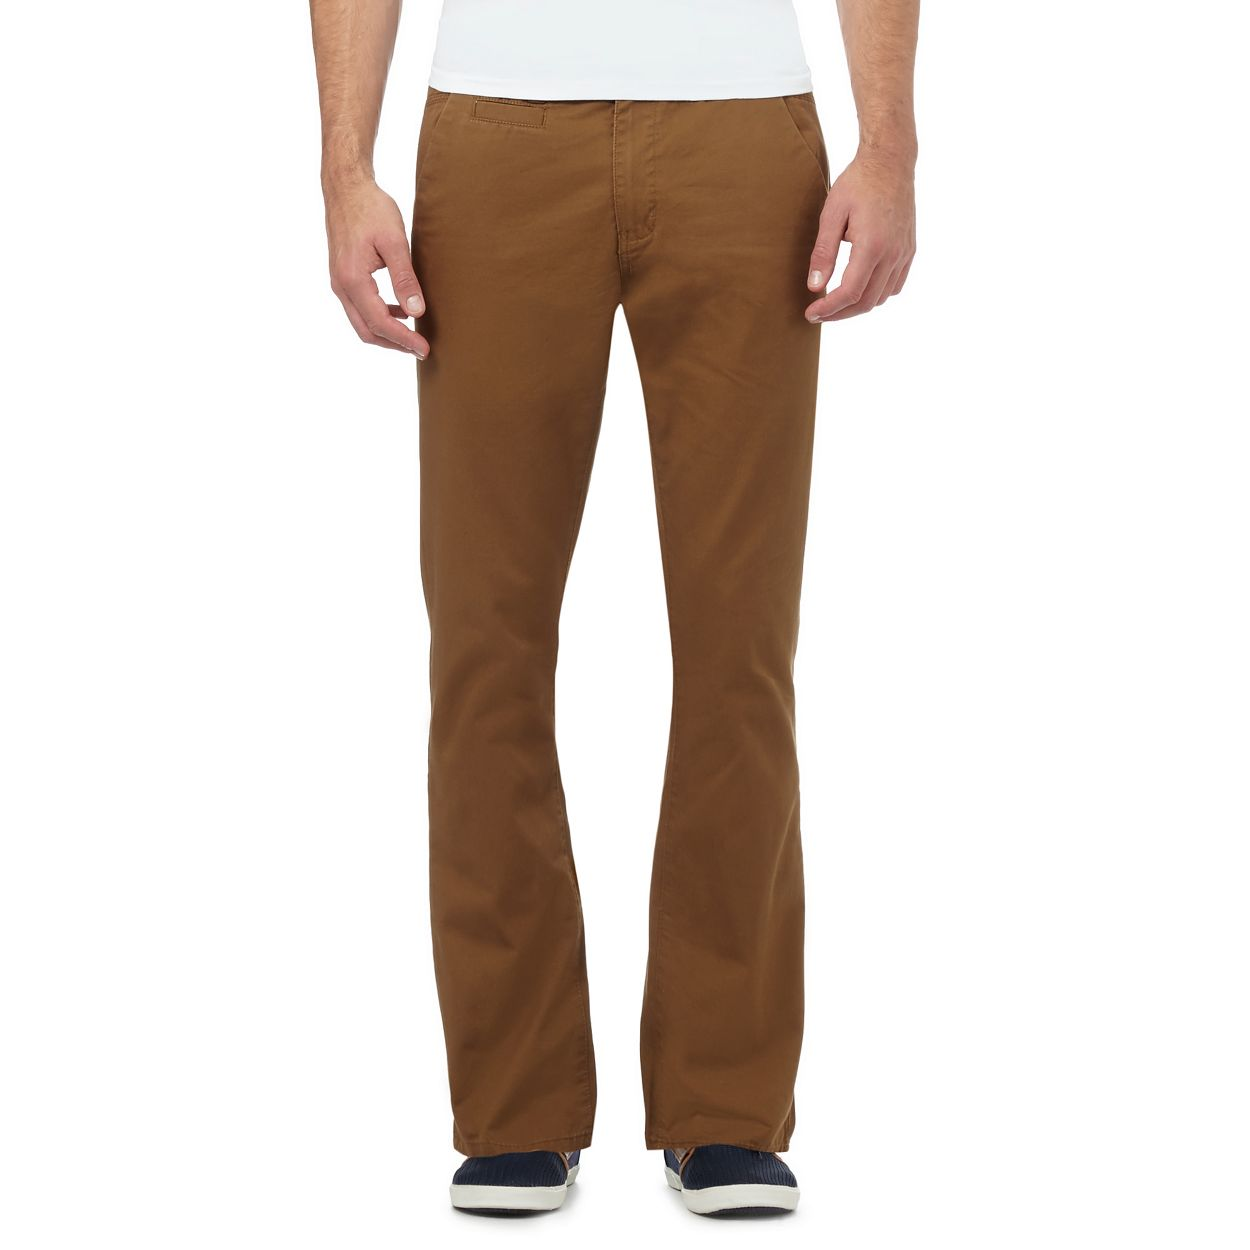 Red Herring Dark Tan Beige slim fit chinos